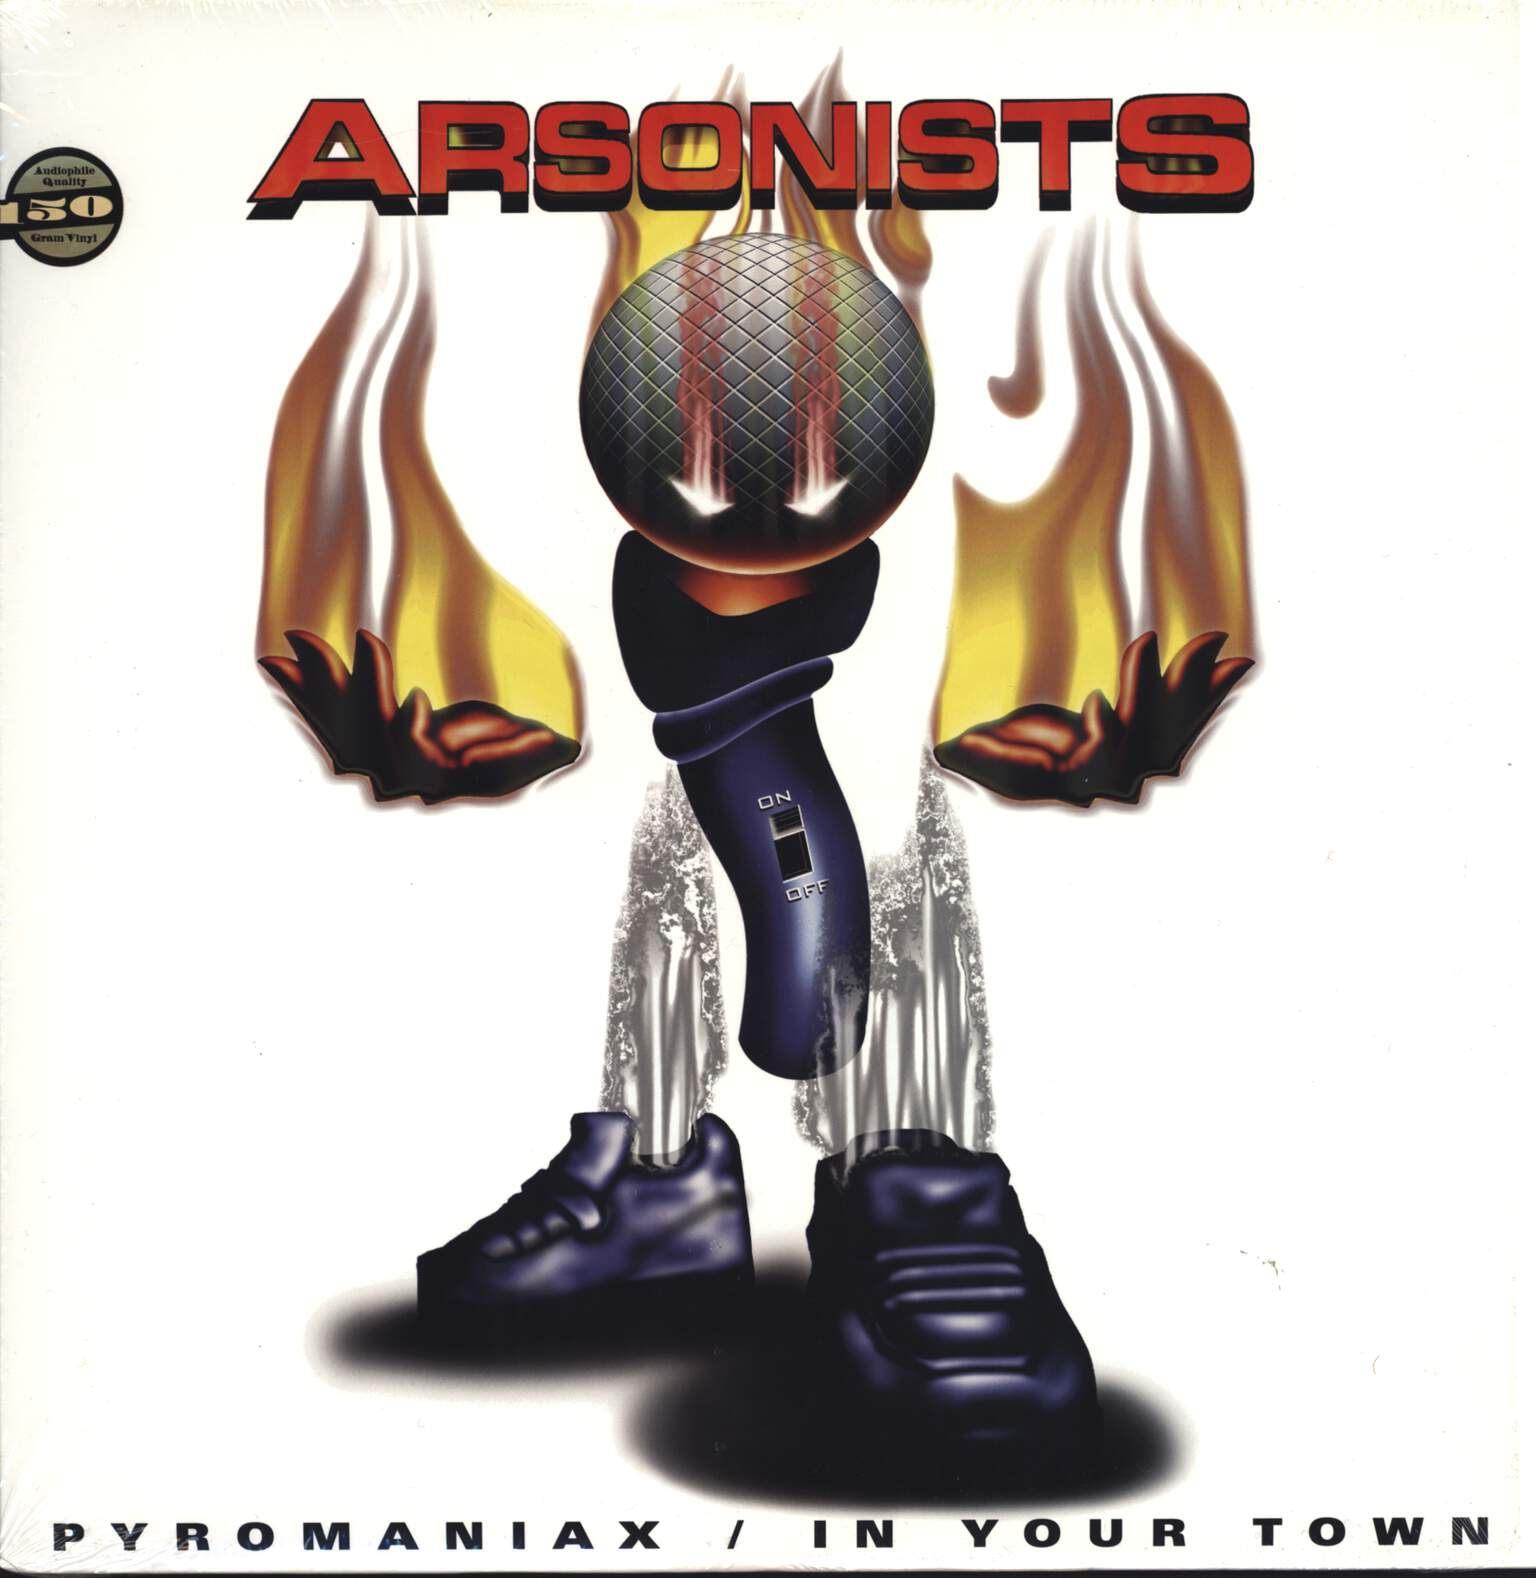 "The Arsonists: Pyromaniax / In Your Town, 12"" Maxi Single (Vinyl)"